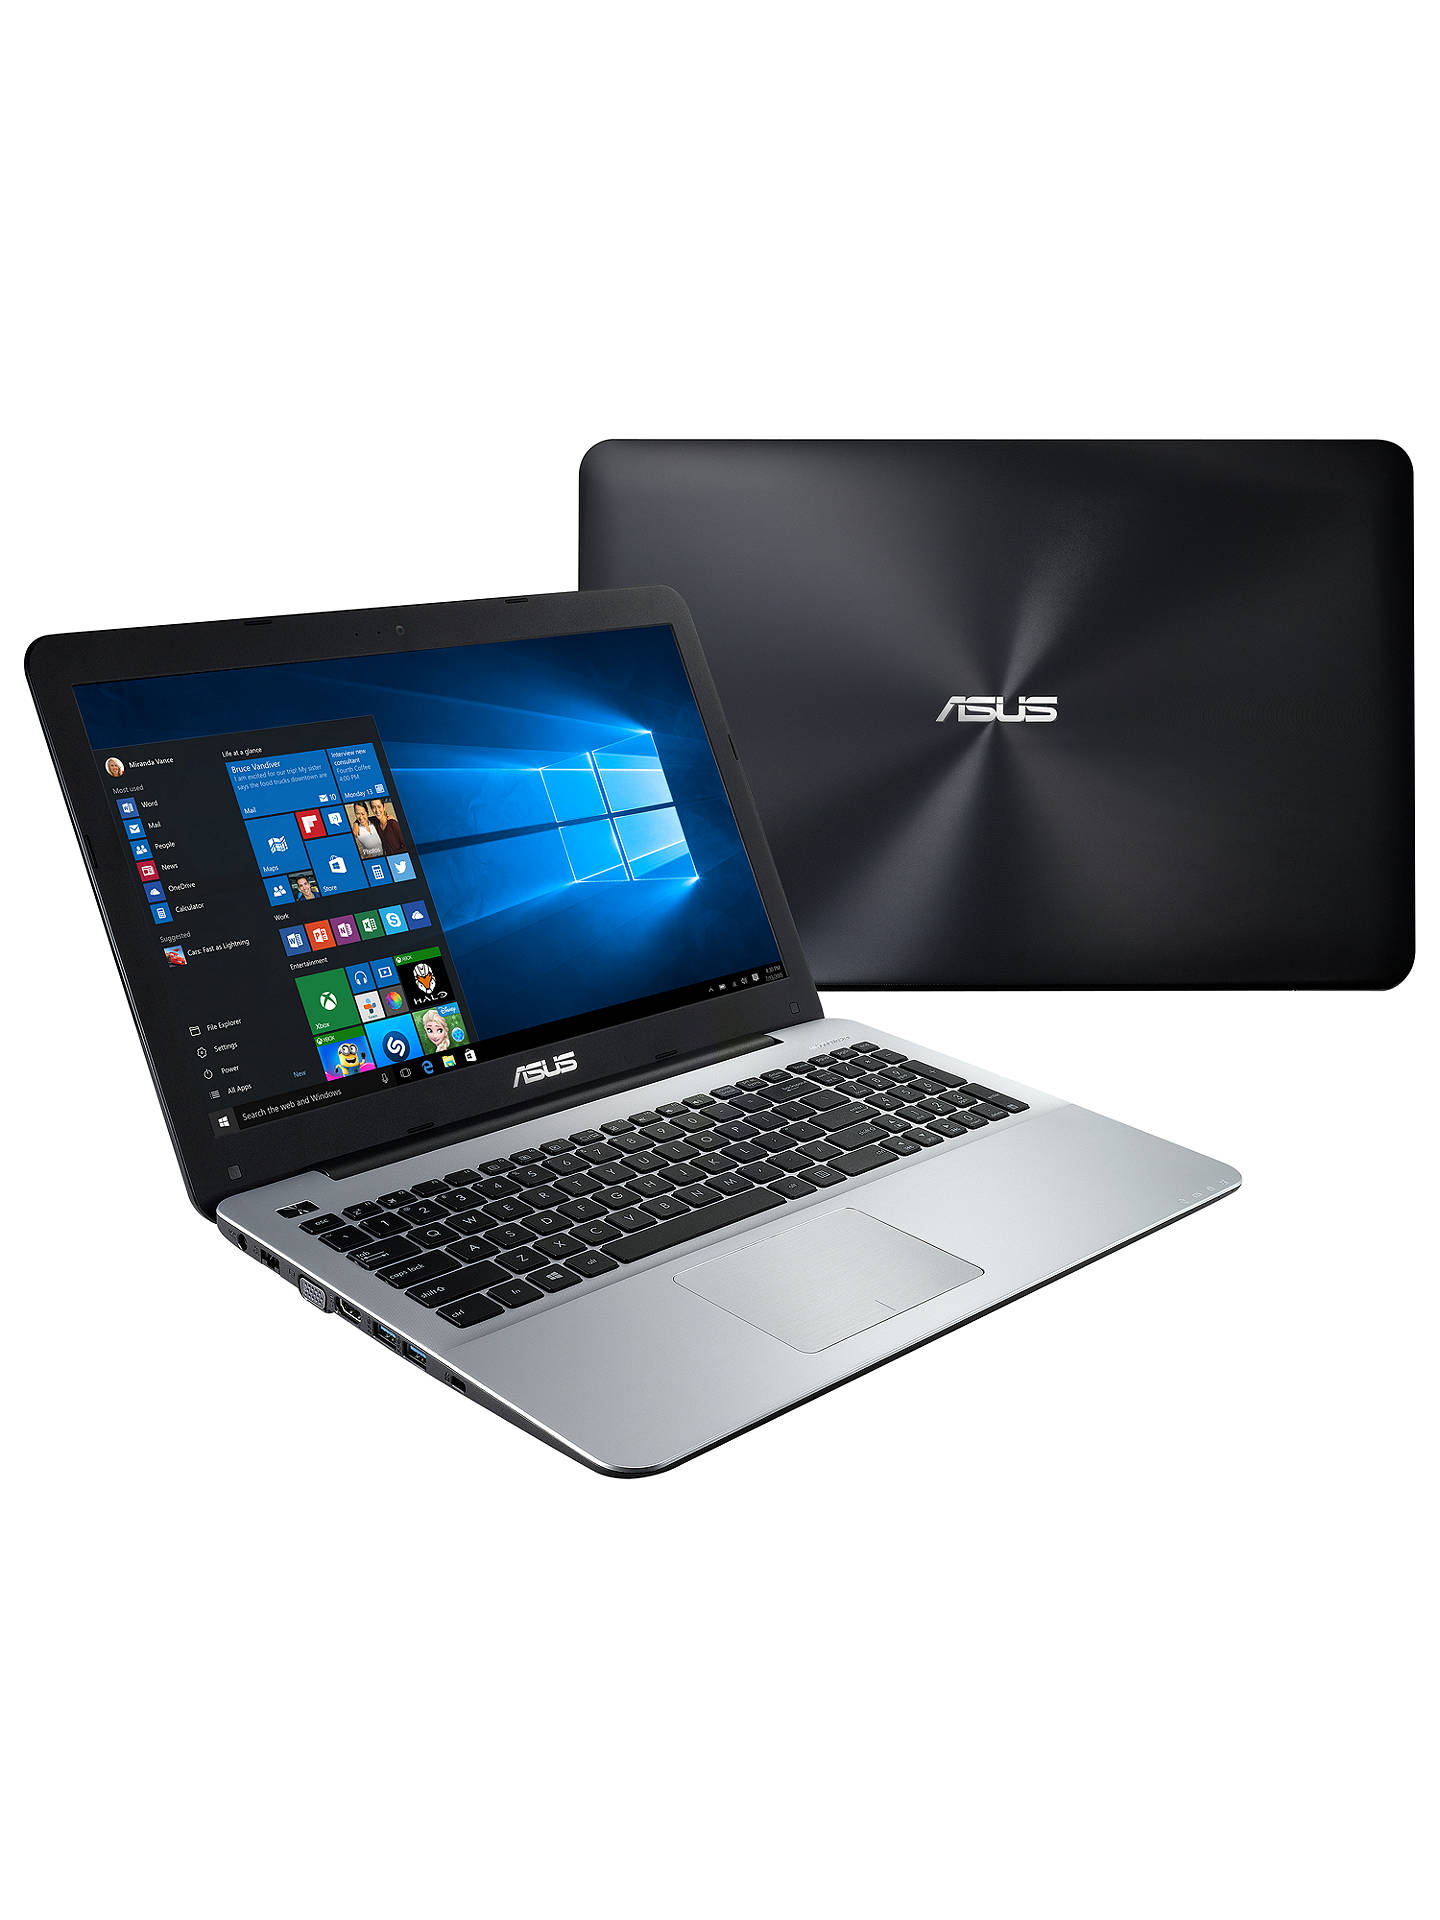 "Buy ASUS X555LA Laptop, Intel Core i7, 8GB RAM, 1TB, 15.6"", Black Online at johnlewis.com"